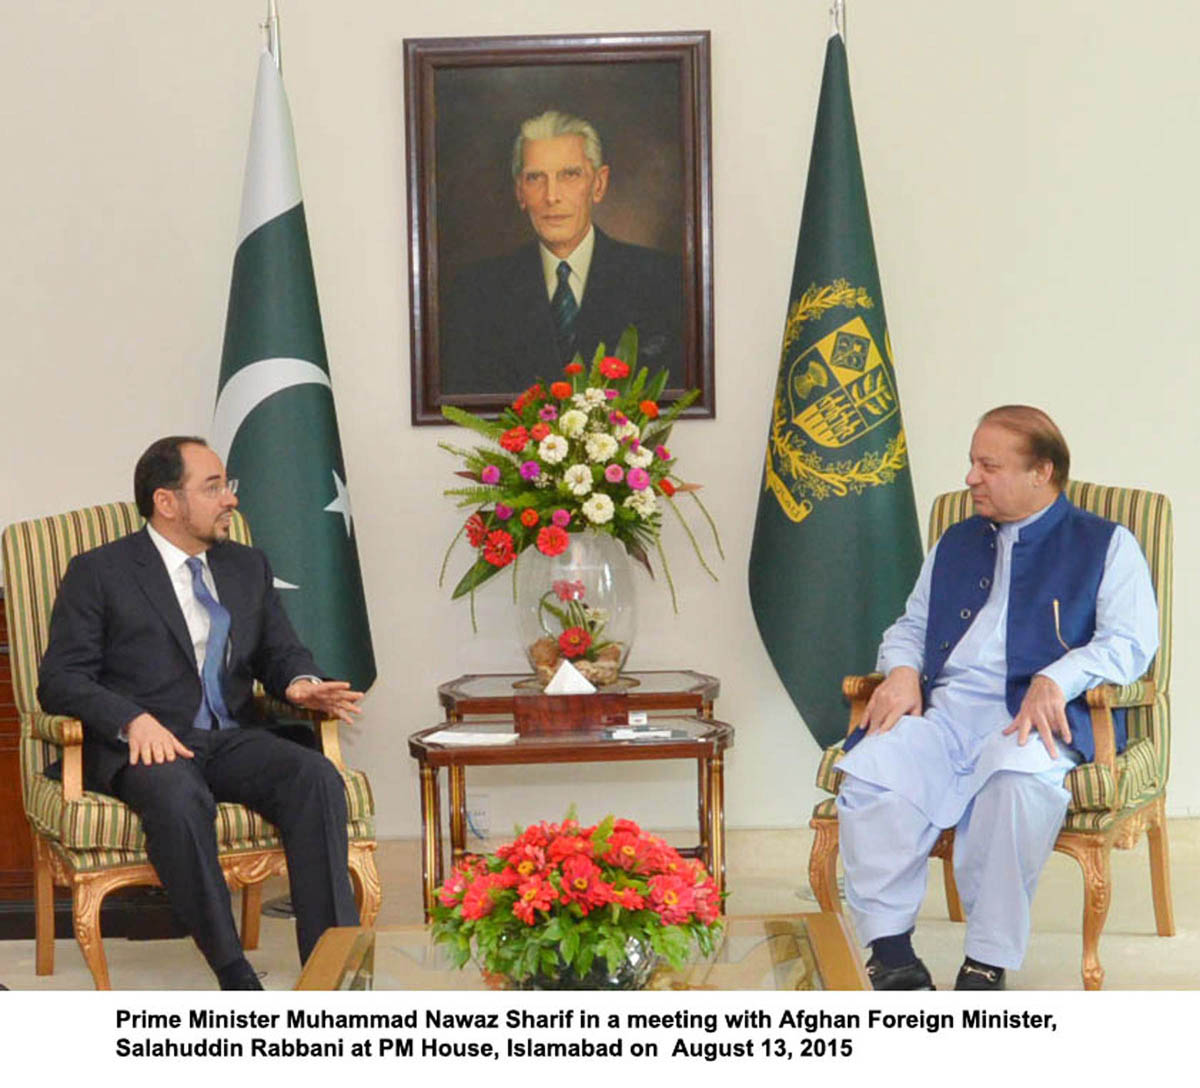 Prime Minister Nawaz Sharif meets Afghan Foreign Minister Salahuddin Rabbani at the PM House in Islamabad on August 3, 2015. PHOTO: PID